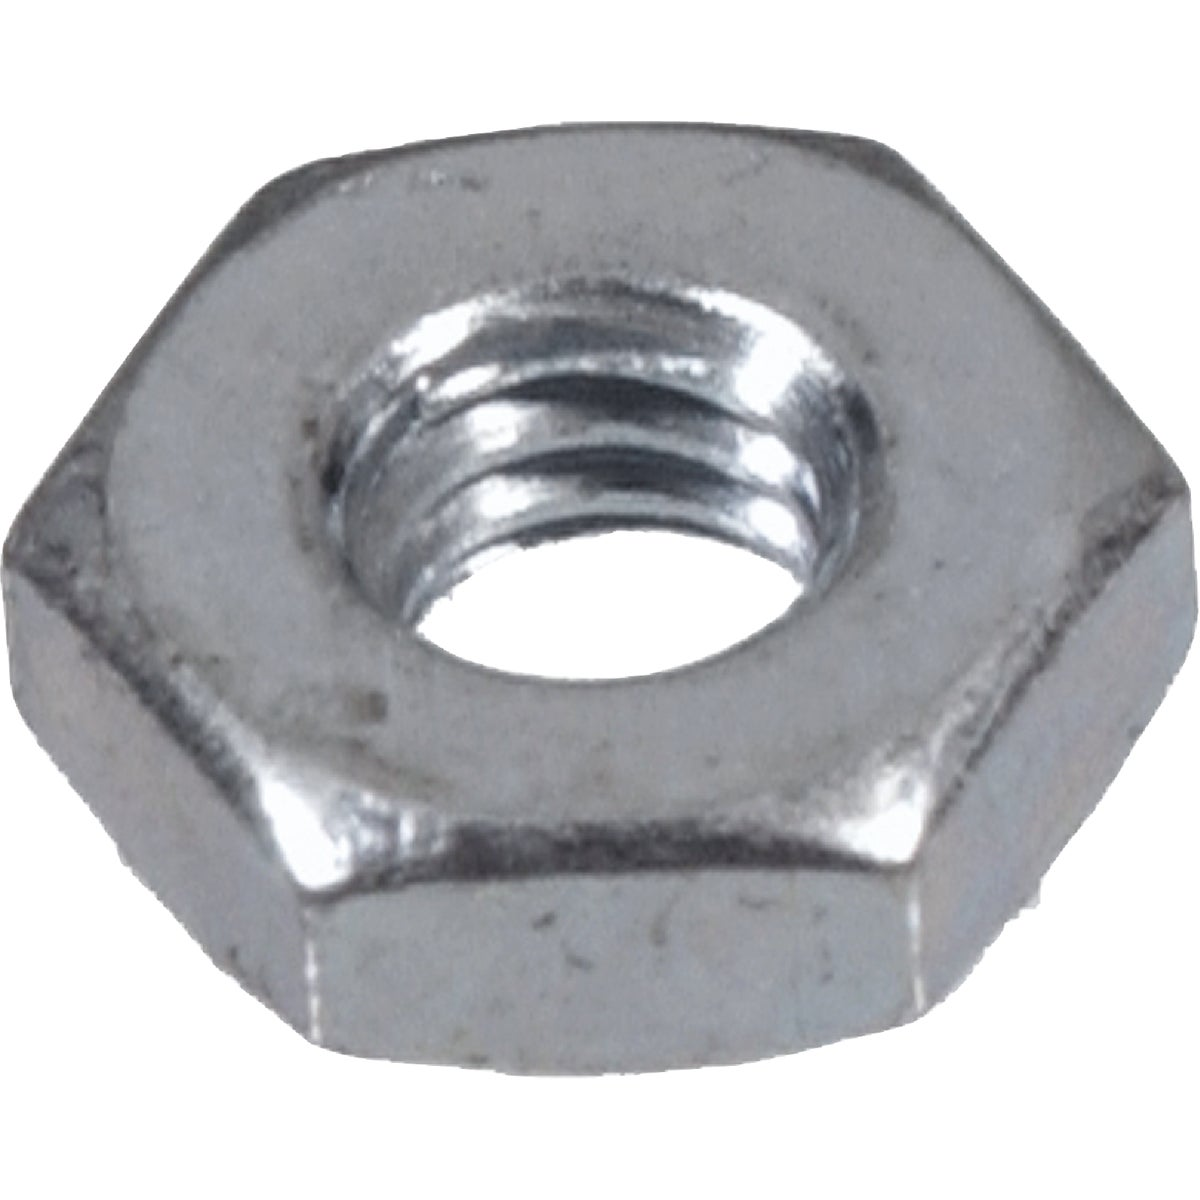 10-24 MACHINE SCREW NUT - 6206 by Hillman Fastener